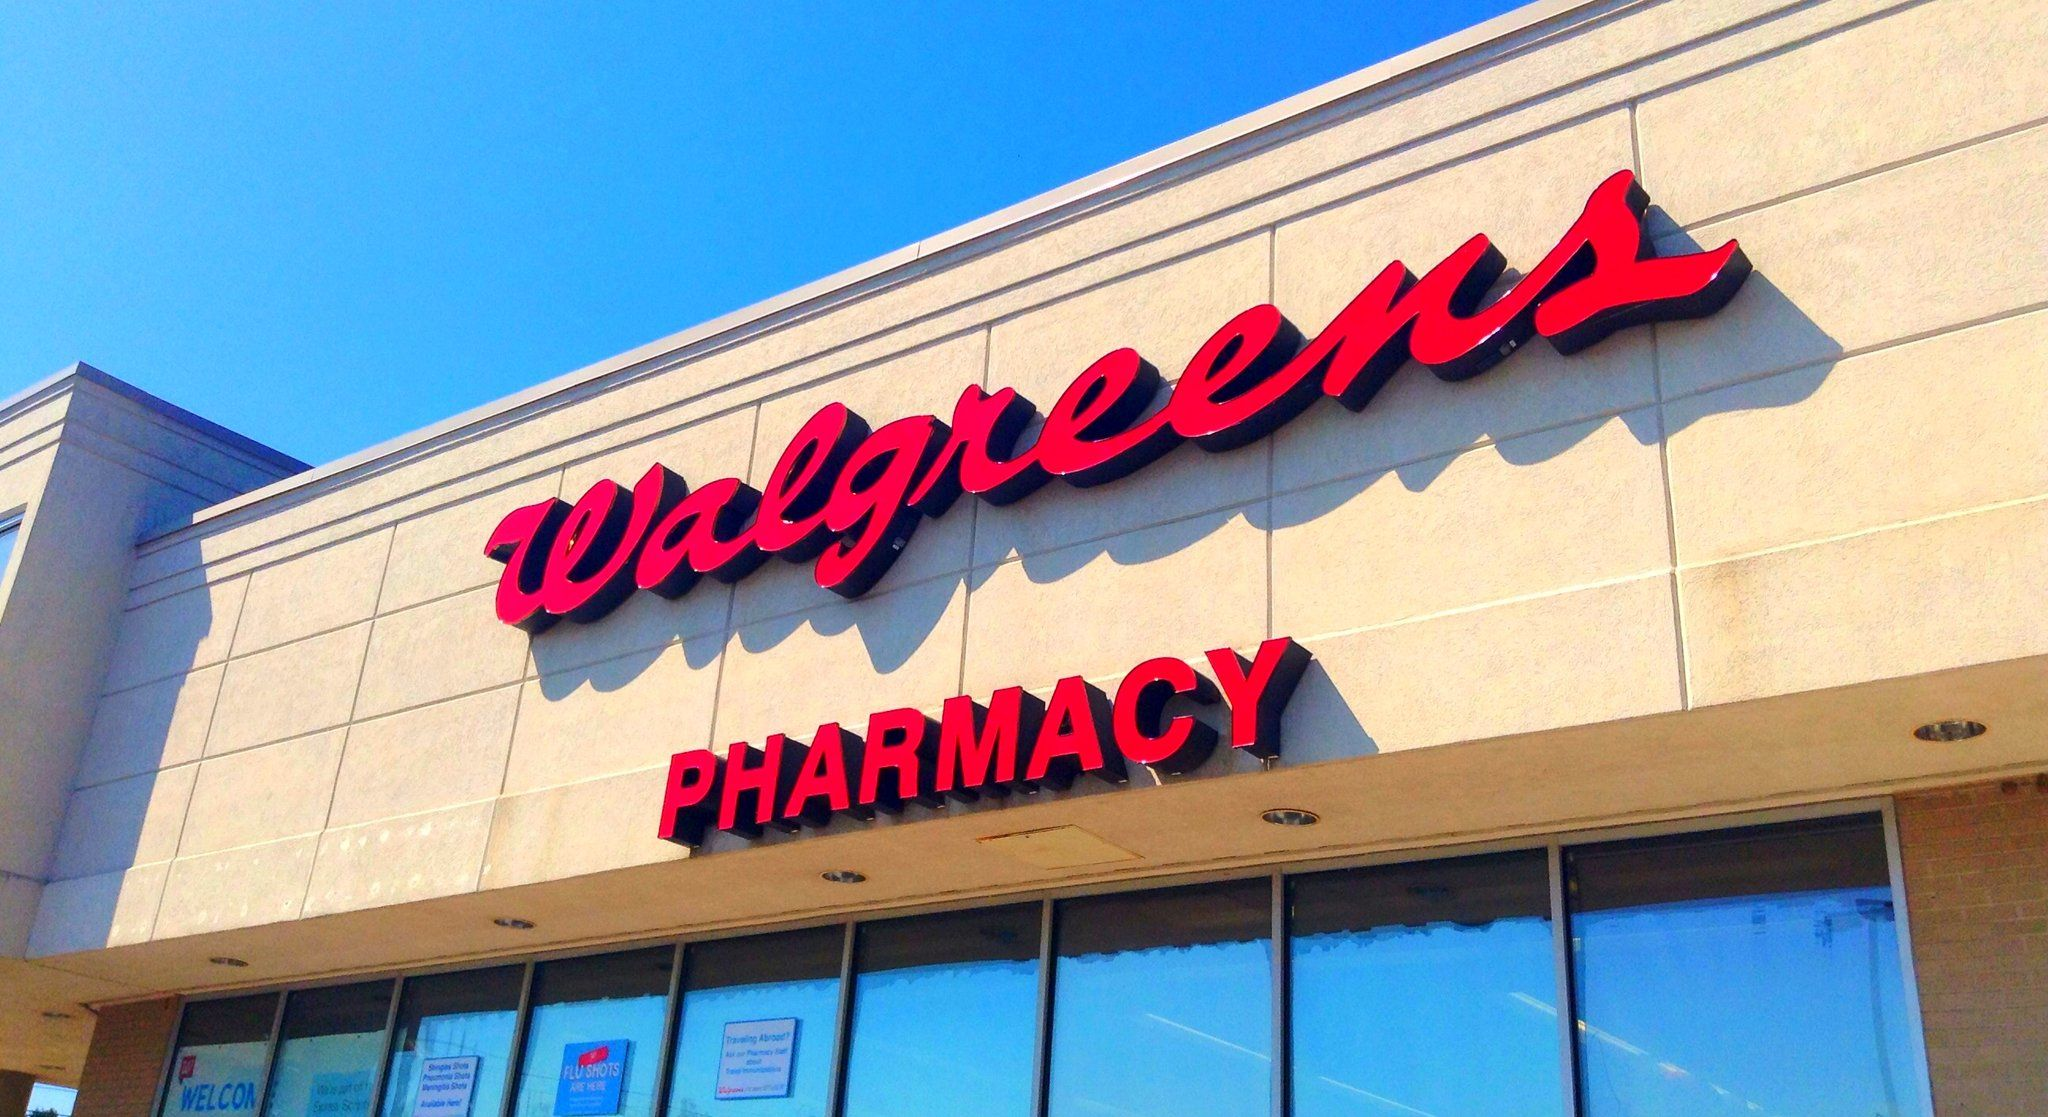 8 walgreens secrets from employees including developing